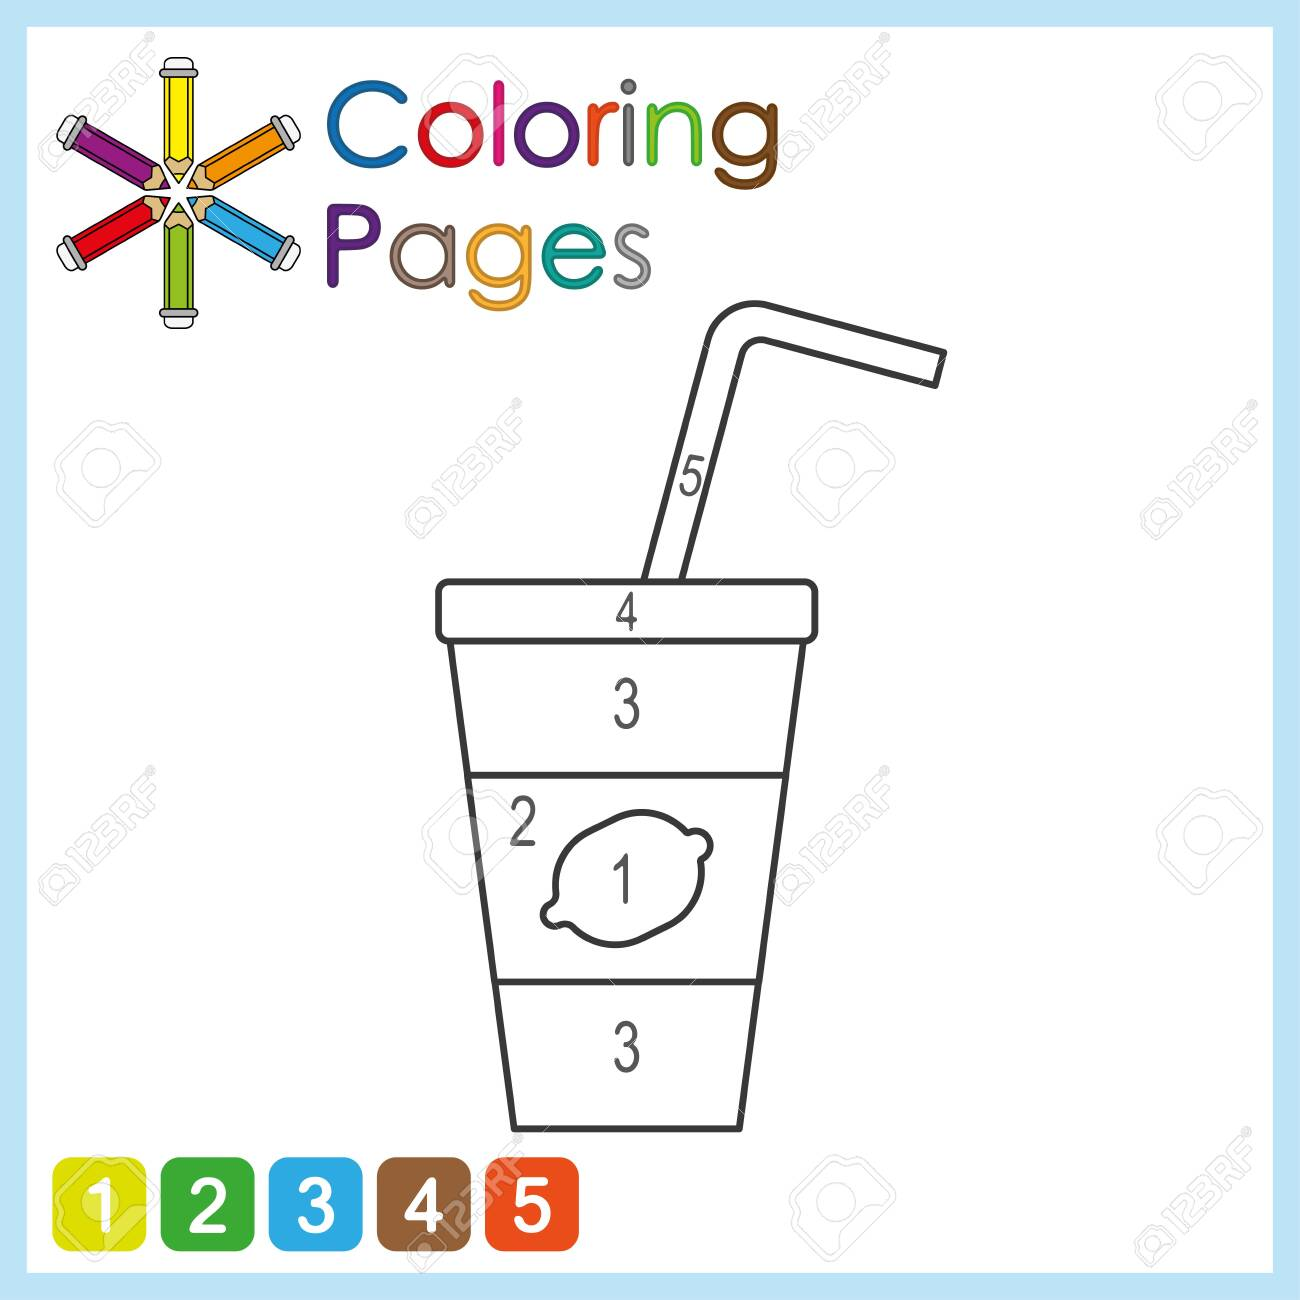 coloring page for kids, color the parts of the object according to numbers, color by numbers - 134278186